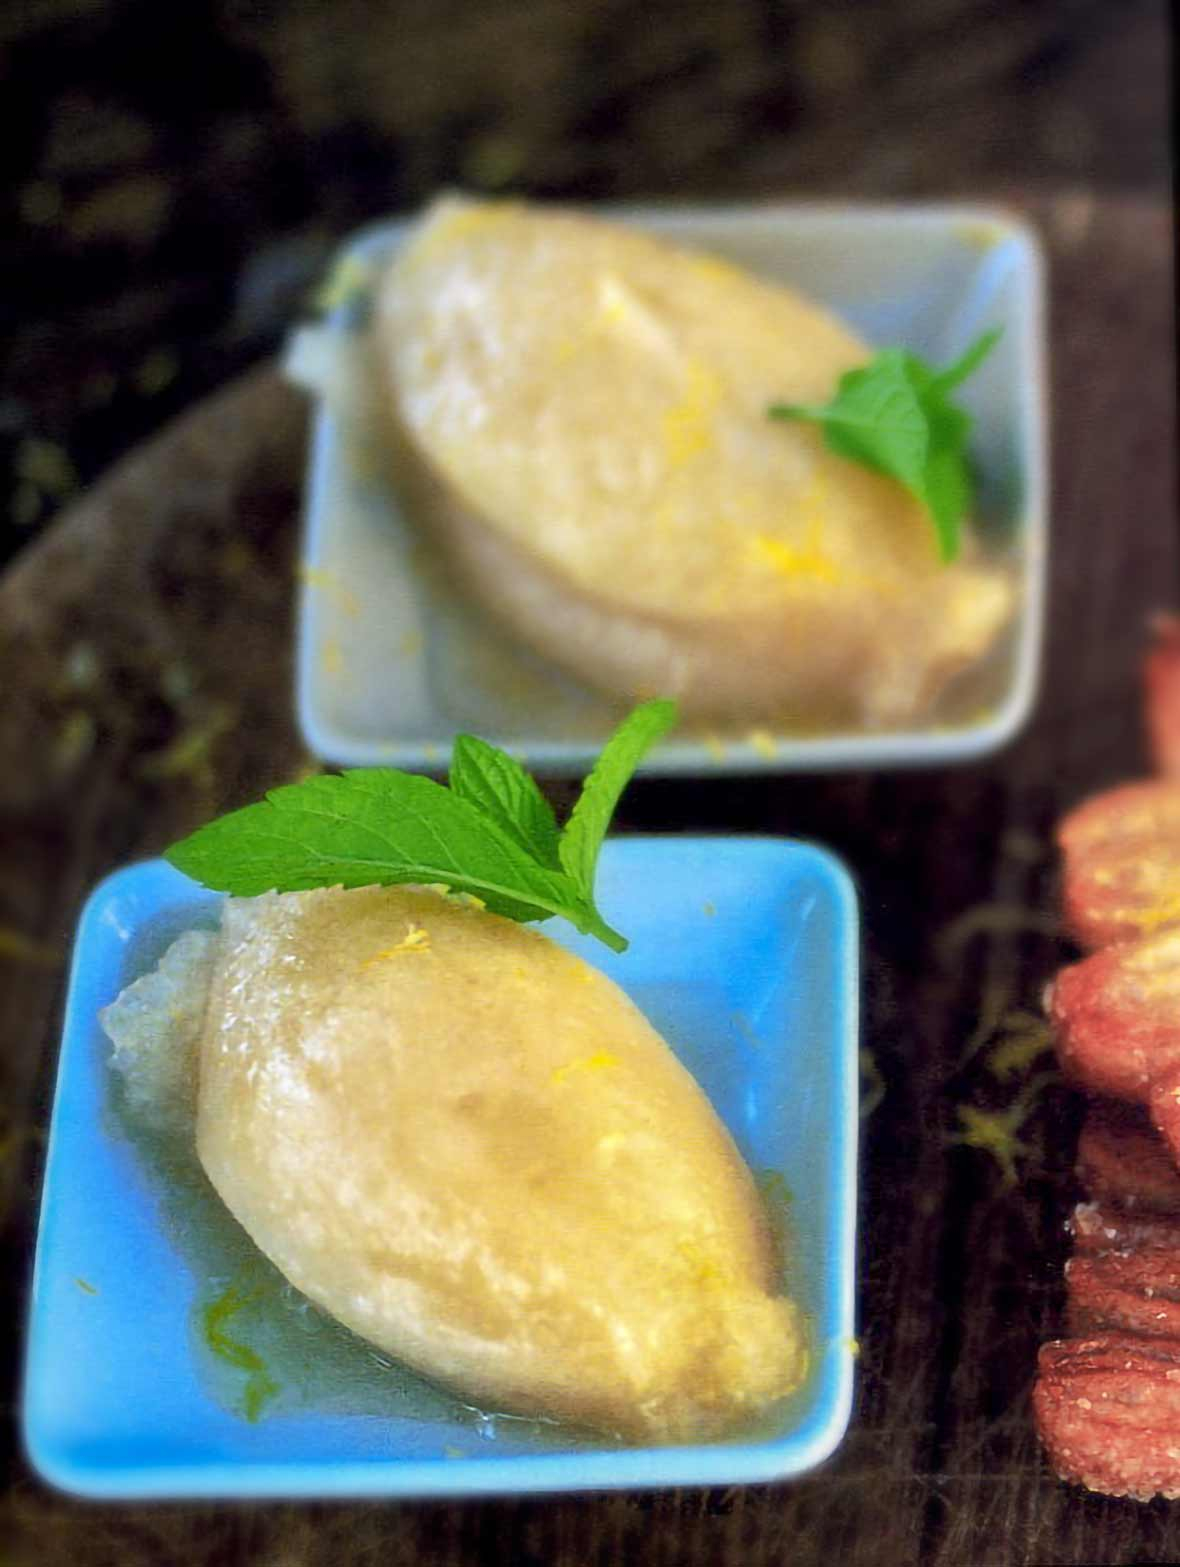 Two plates with a scoop each of pear sorbet and a mint leaf